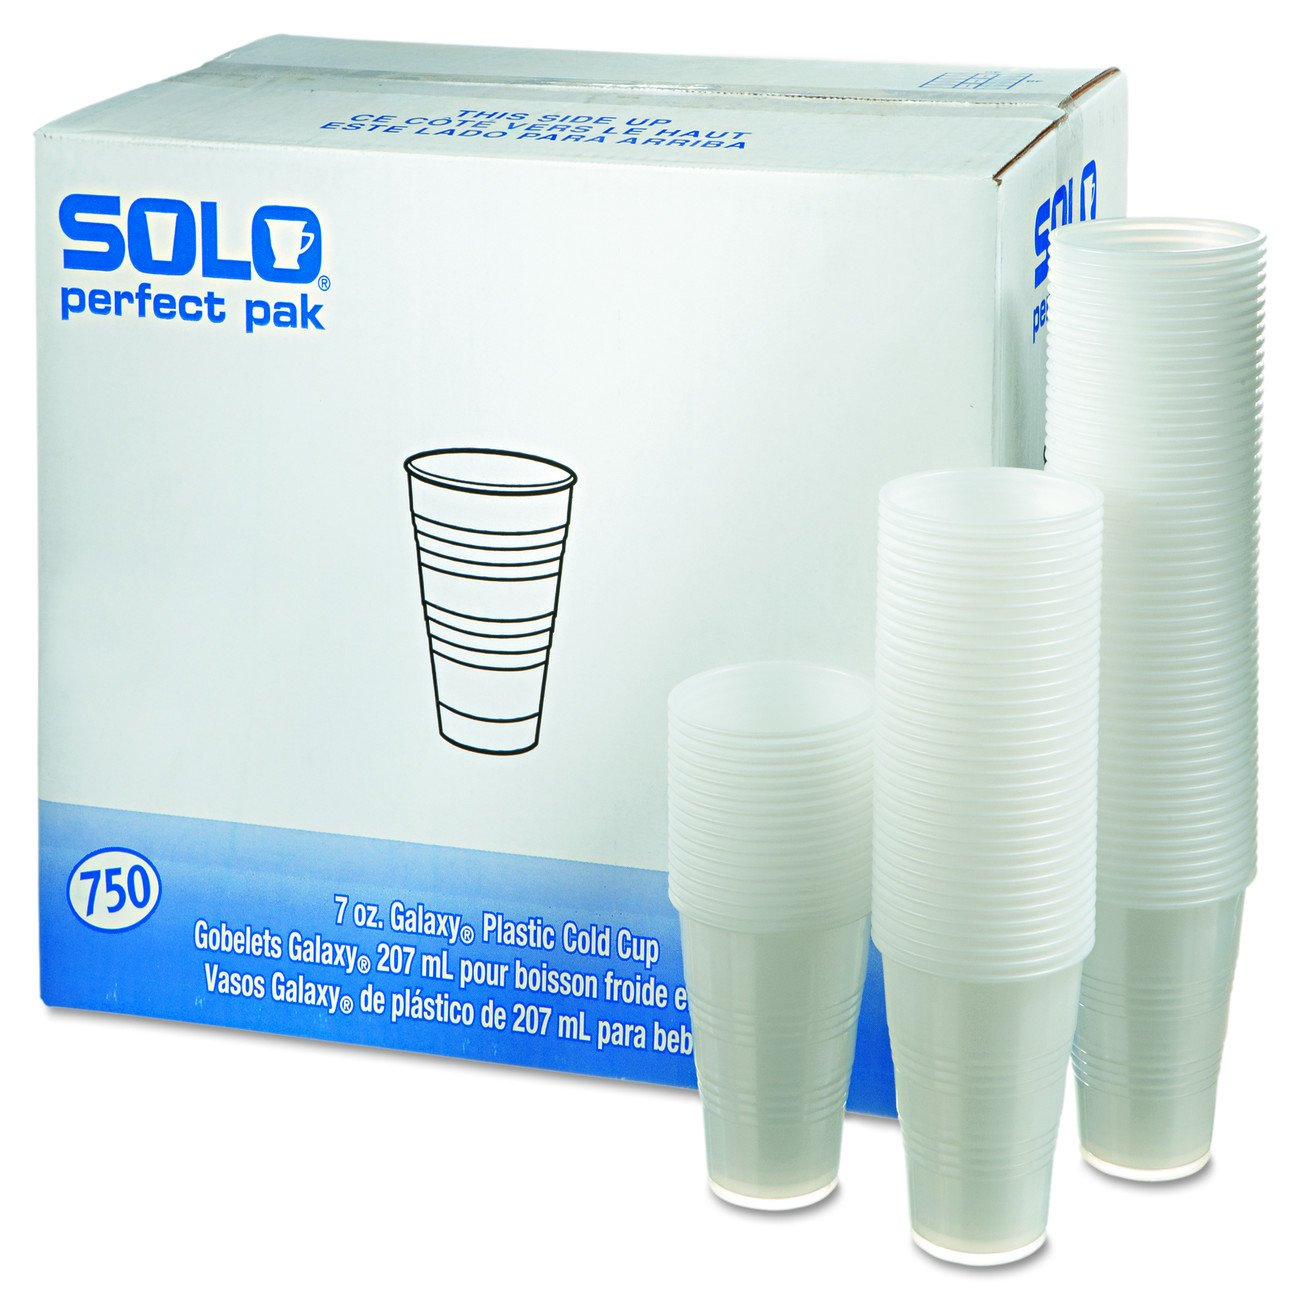 Dart Y7PFTPK Perfect Pack 7 oz Trans Ribbed Wall PS Cup (Case of 750): Amazon.com: Industrial & Scientific